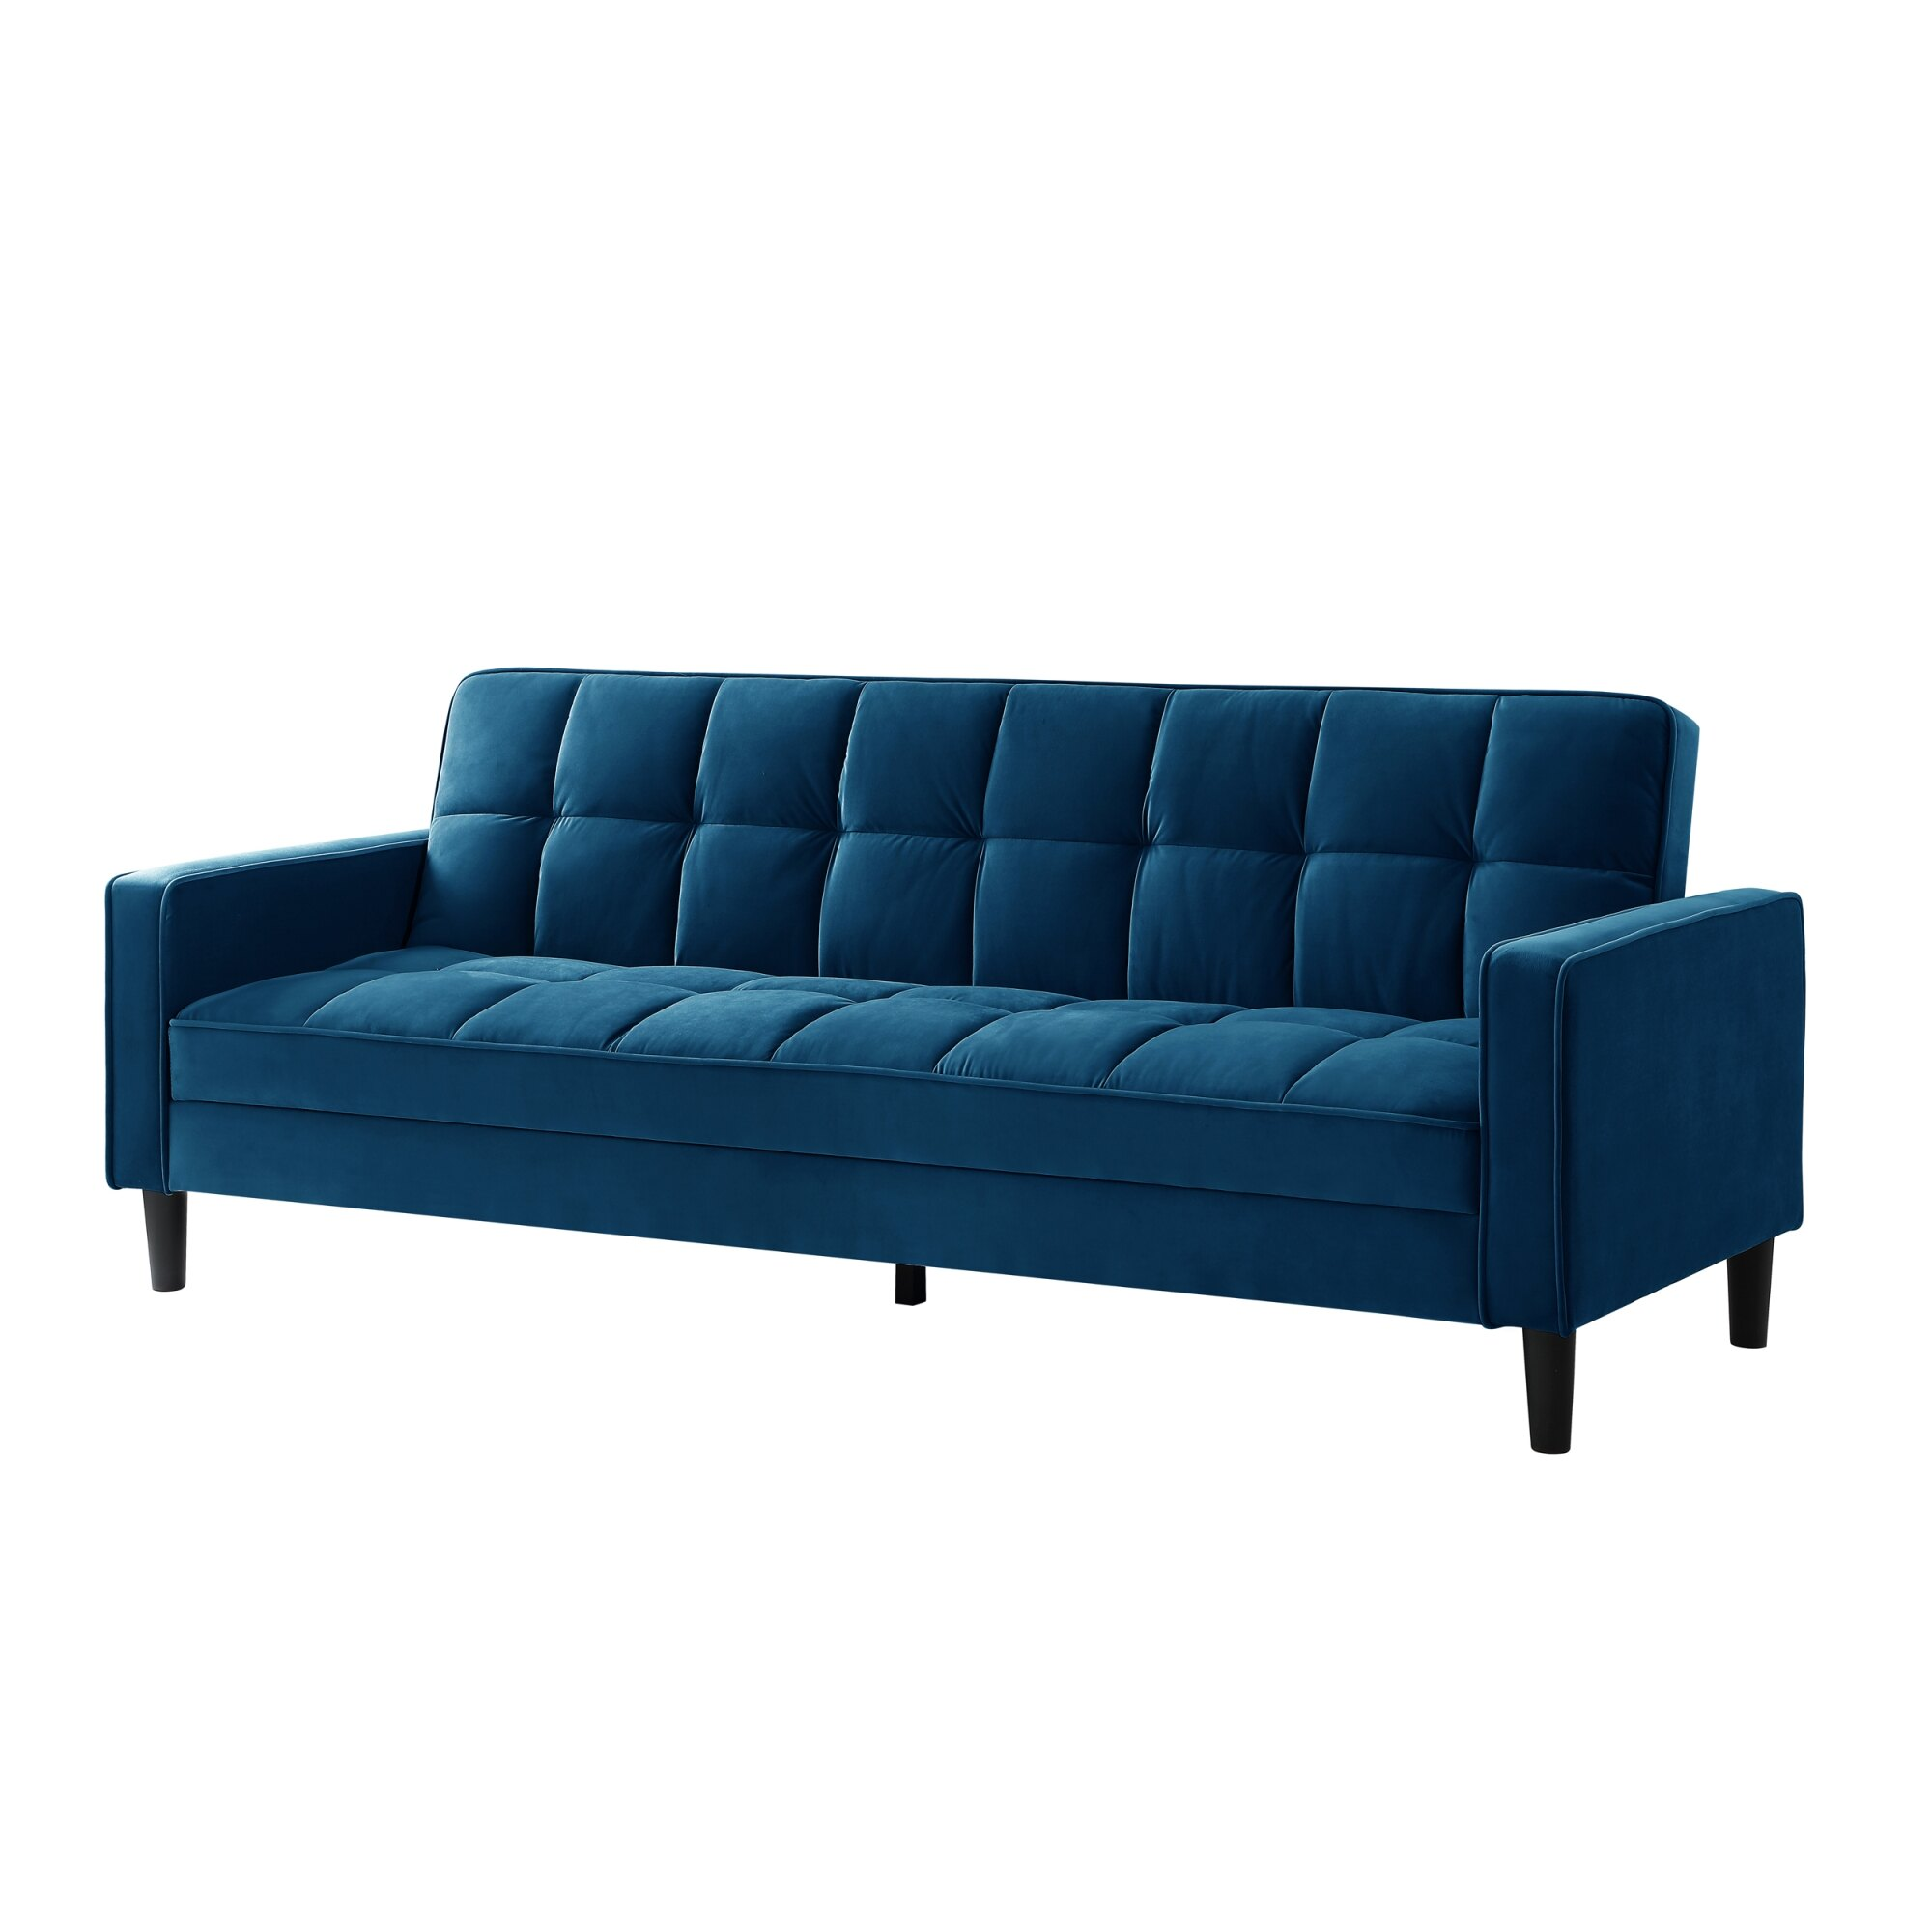 Olson Sofa Bed Convertible Tufted Storage